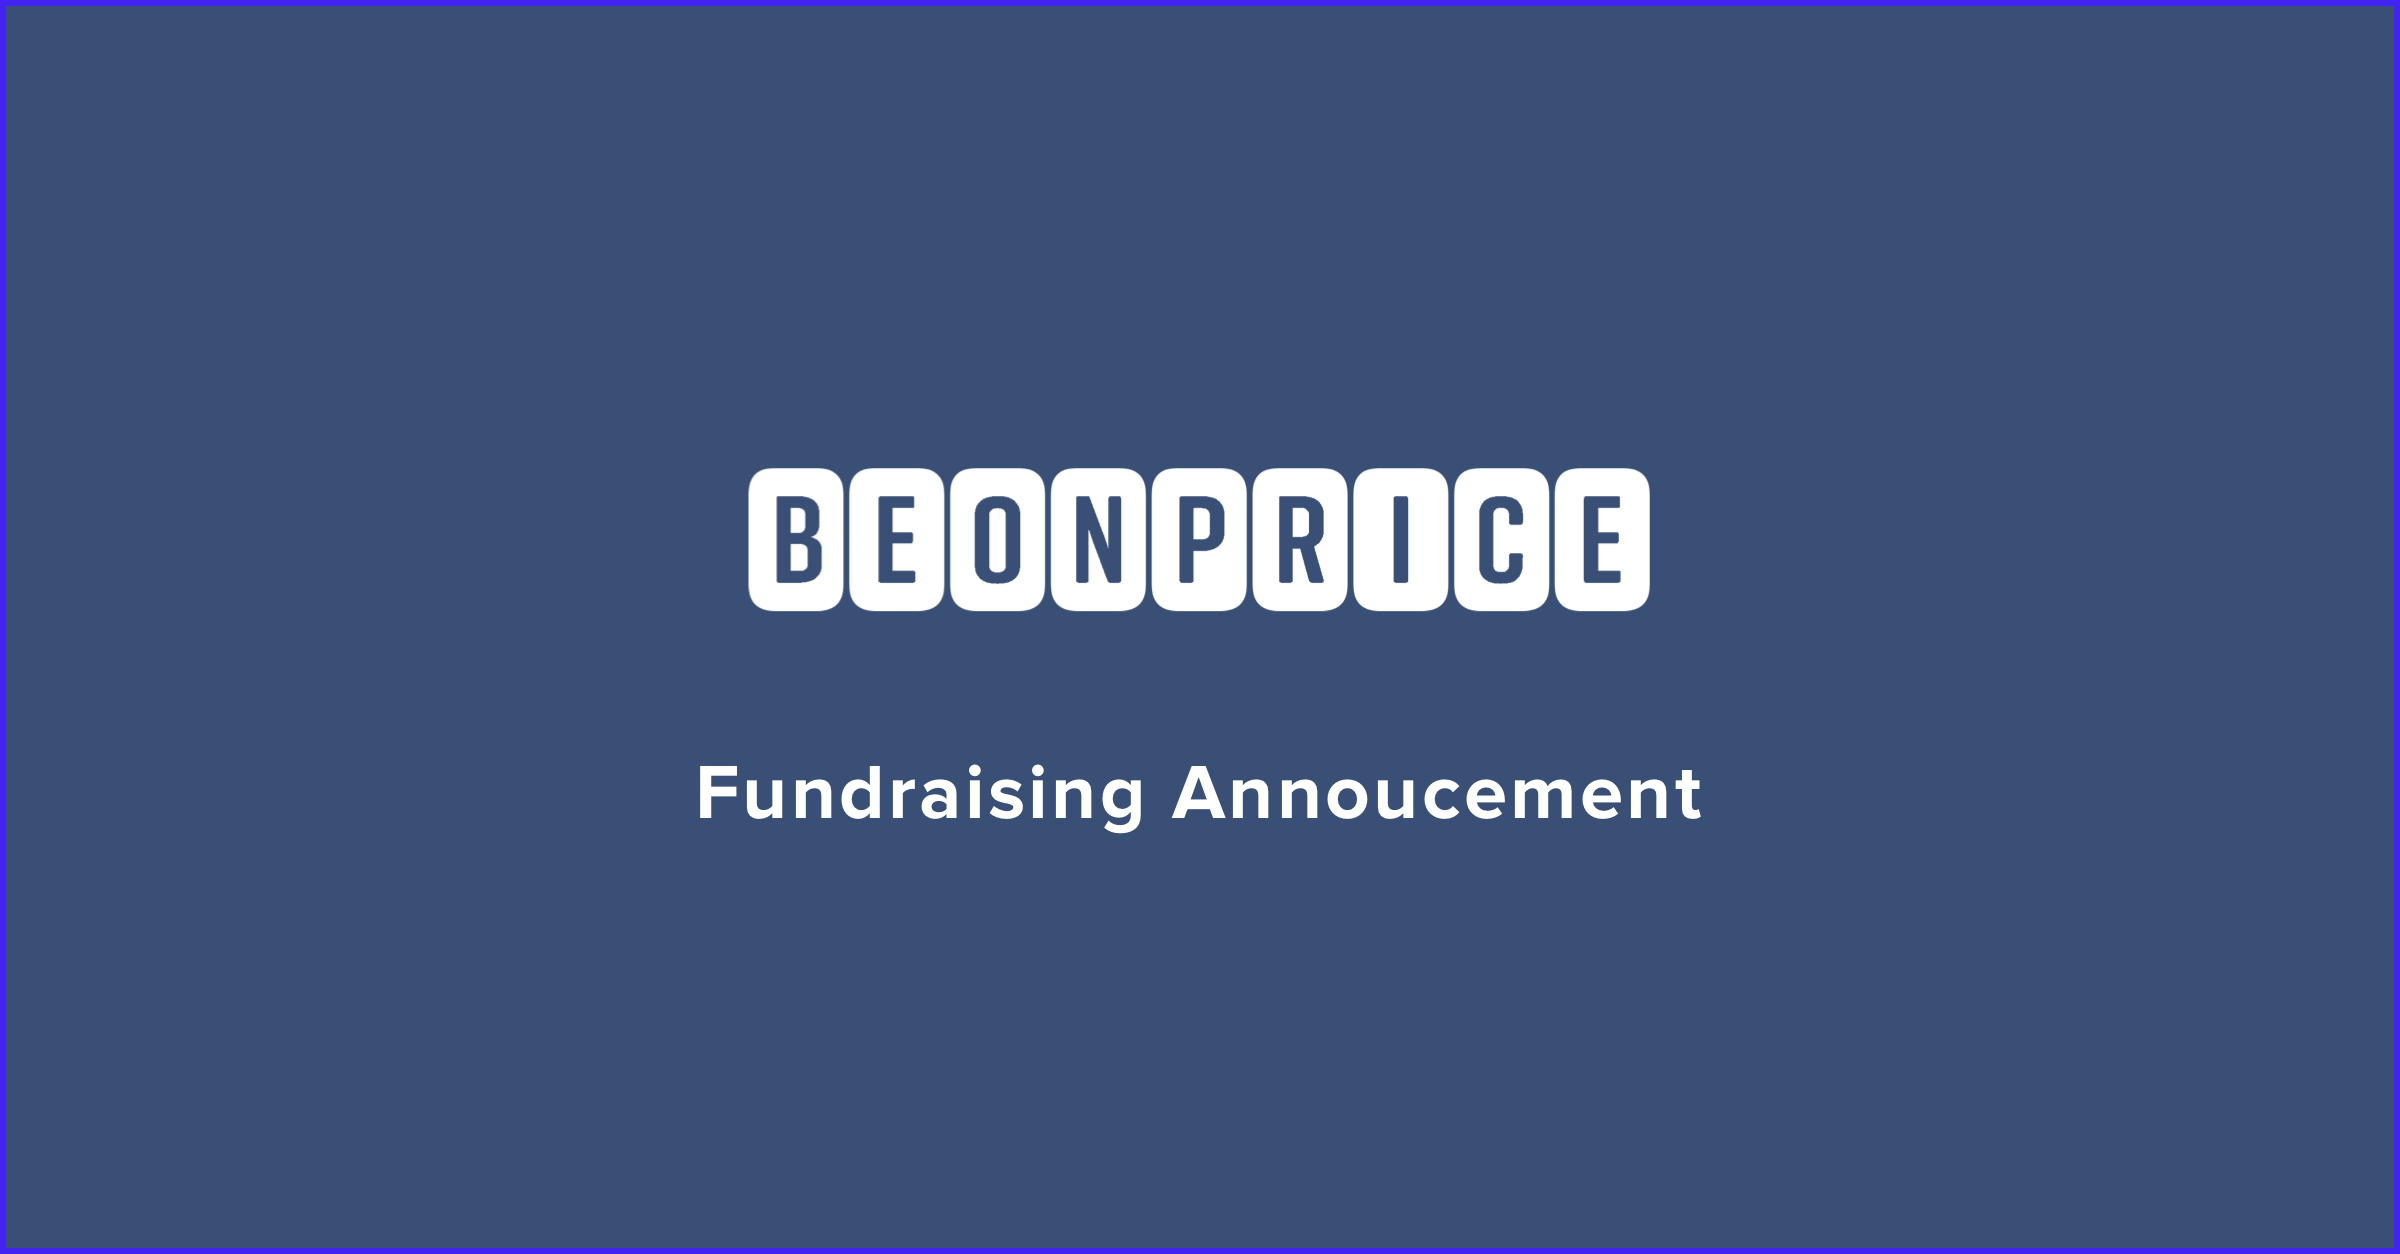 Beonprice closes €2M investment round with existing partners and CDTI